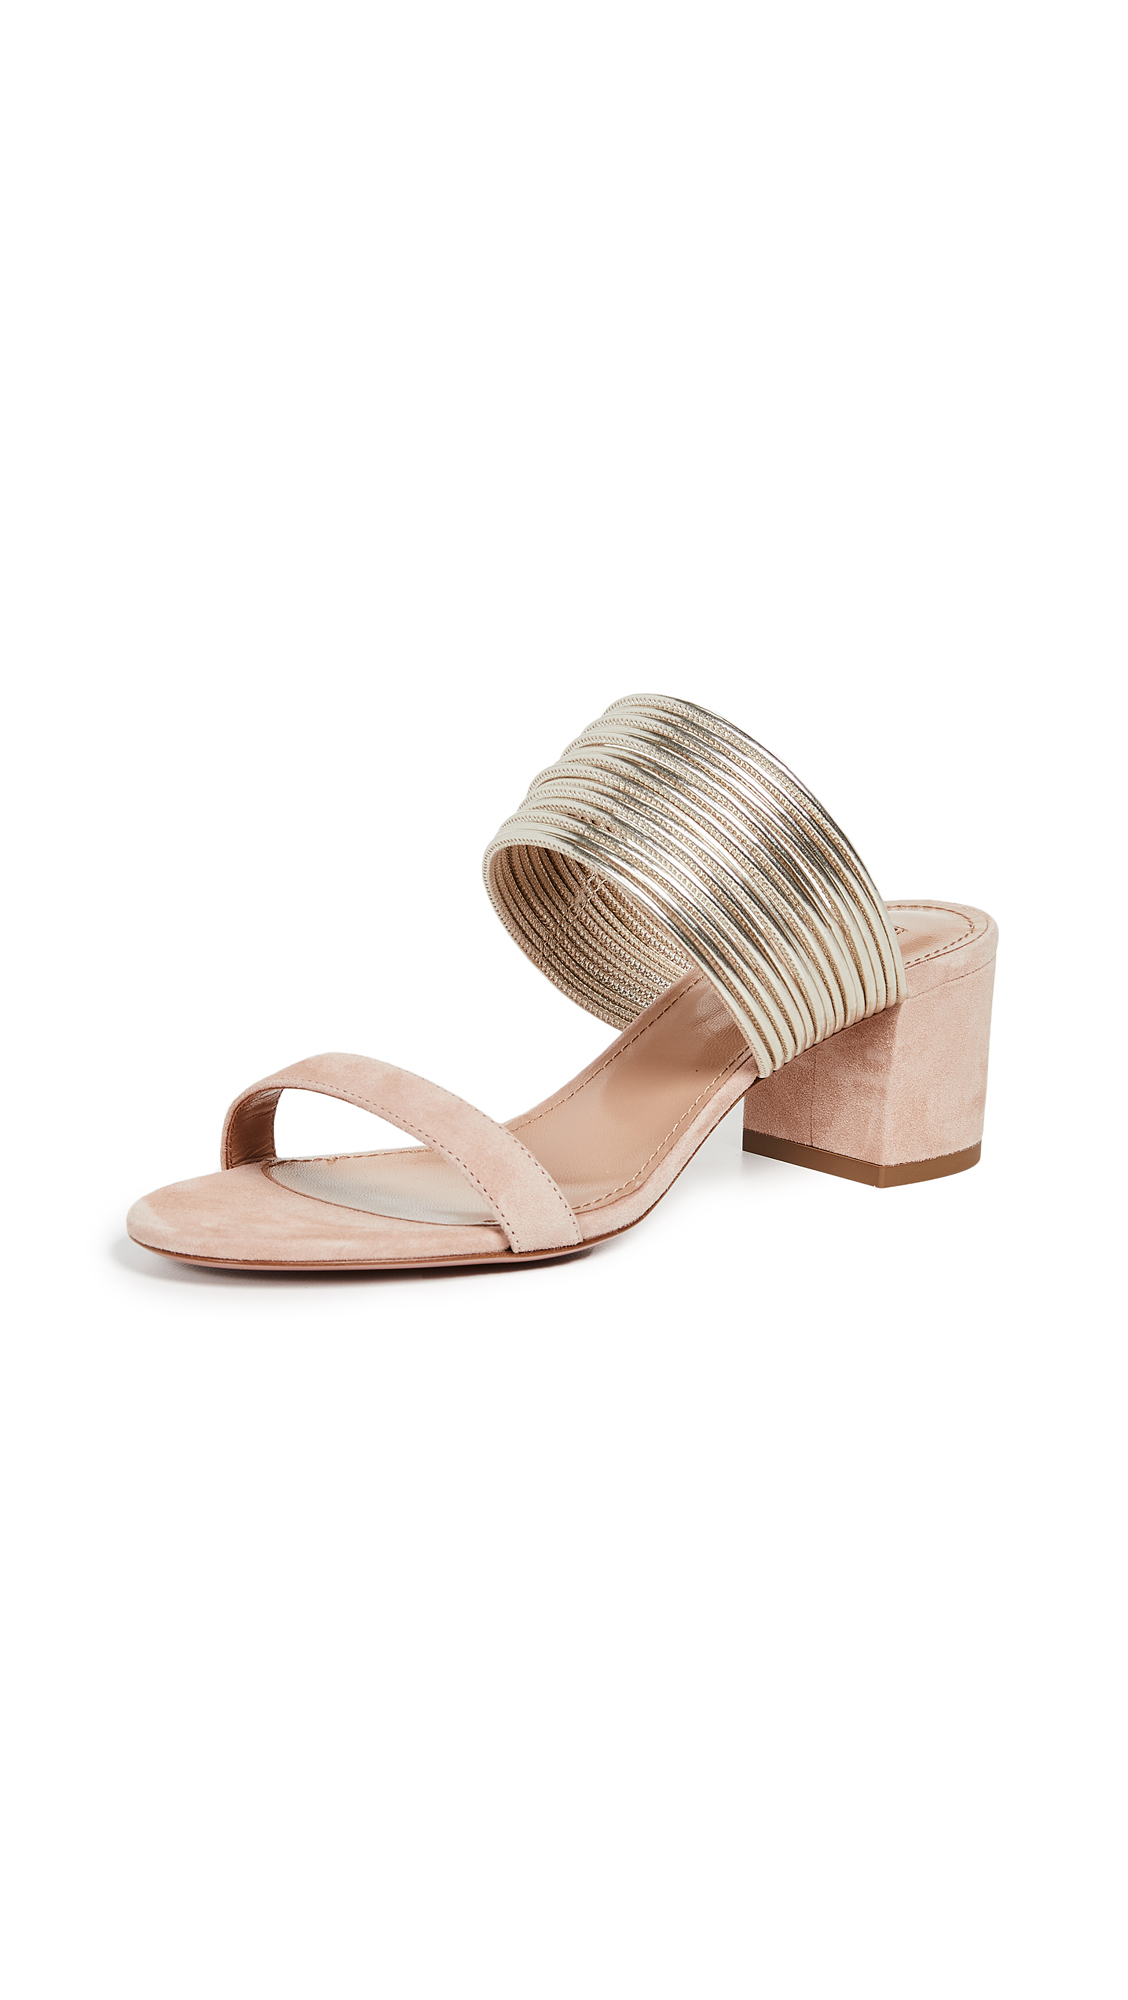 Aquazzura Rendez Vous Sandals - Powder Pink/Light Gold